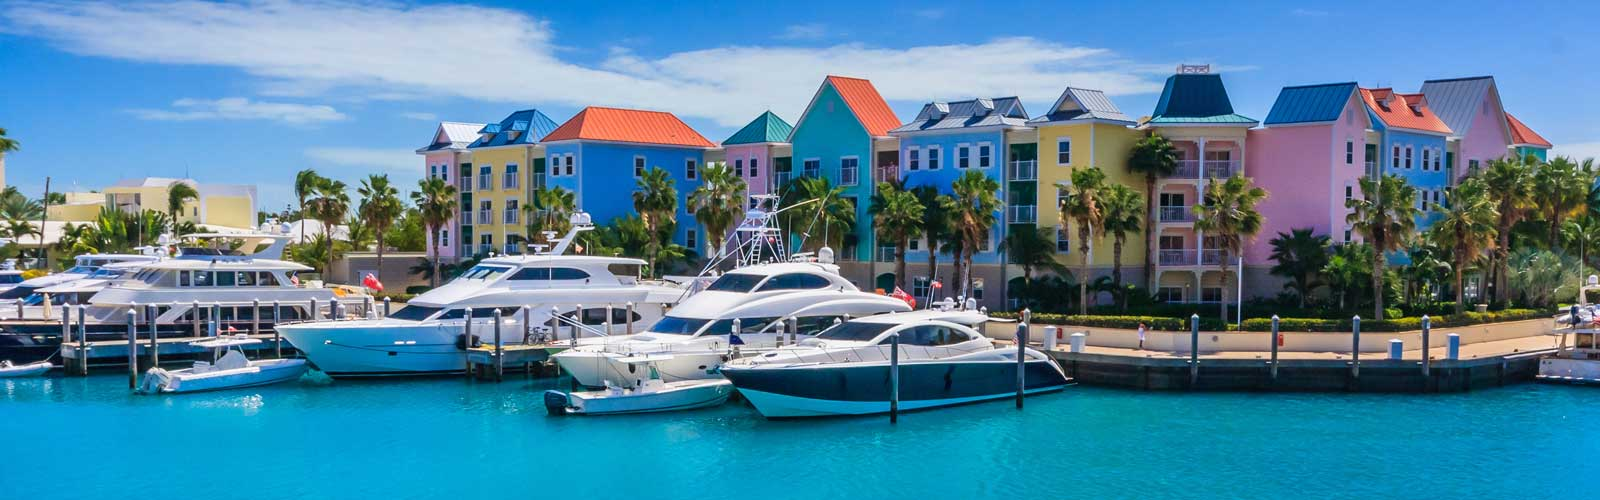 Colourful homes along ocean in Nassau, Bahamas.